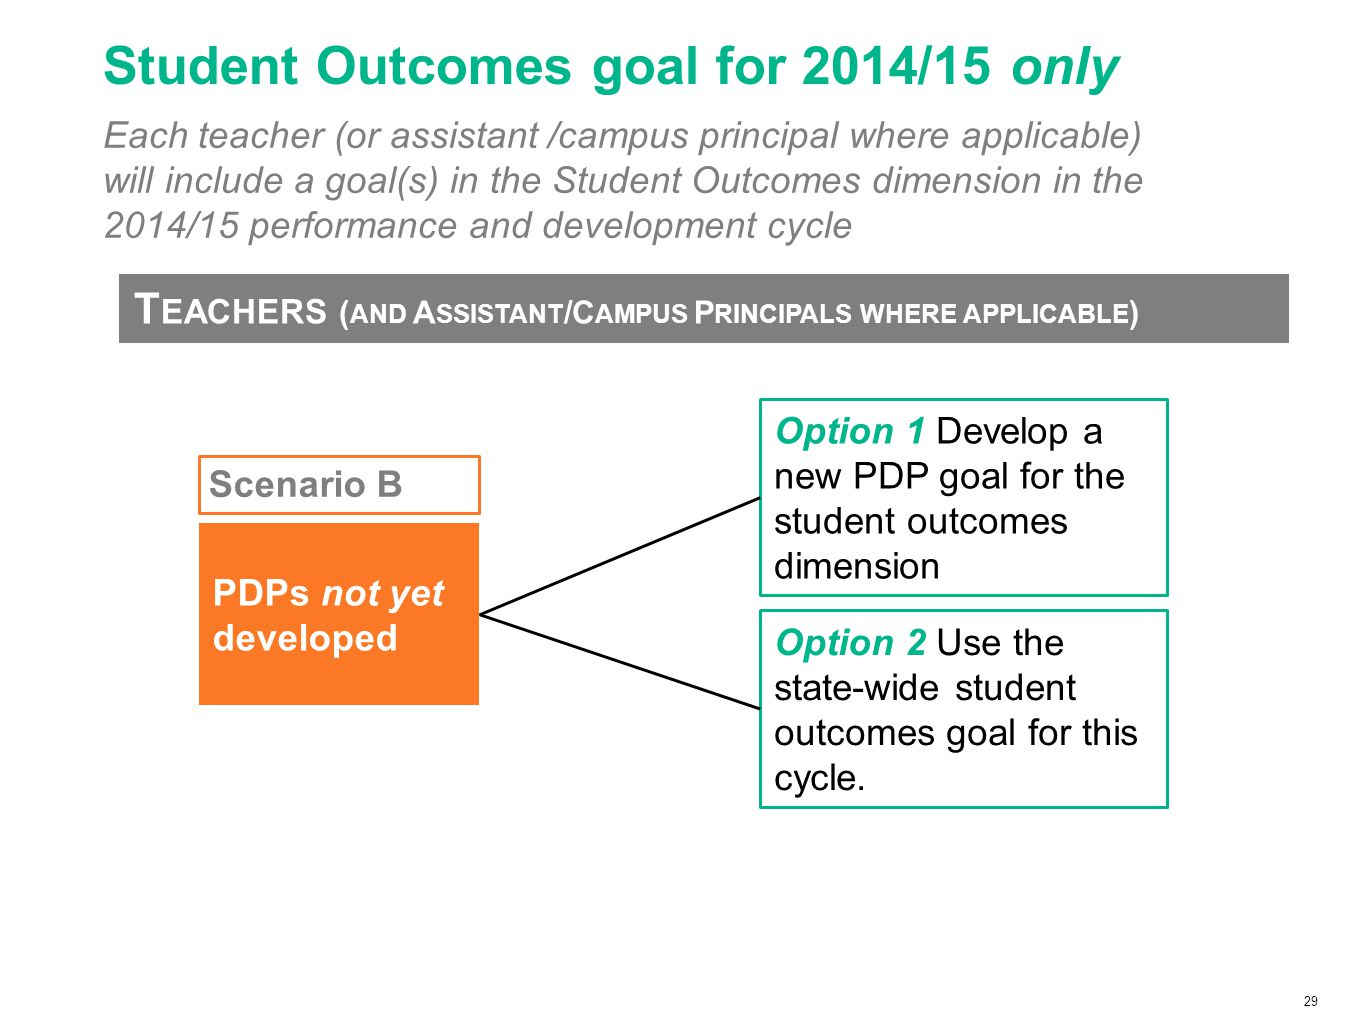 29 Student Outcomes goal for 2014/15 only Each teacher (or assistant /campus principal where applicable) will include a goal(s) in the Student Outcomes dimension in the 2014/15 performance and development cycle T EACHERS ( AND A SSISTANT /C AMPUS P RINCIPALS WHERE APPLICABLE ) Option 1 Develop a new PDP goal for the student outcomes dimension Option 2 Use the state-wide student outcomes goal for this cycle.